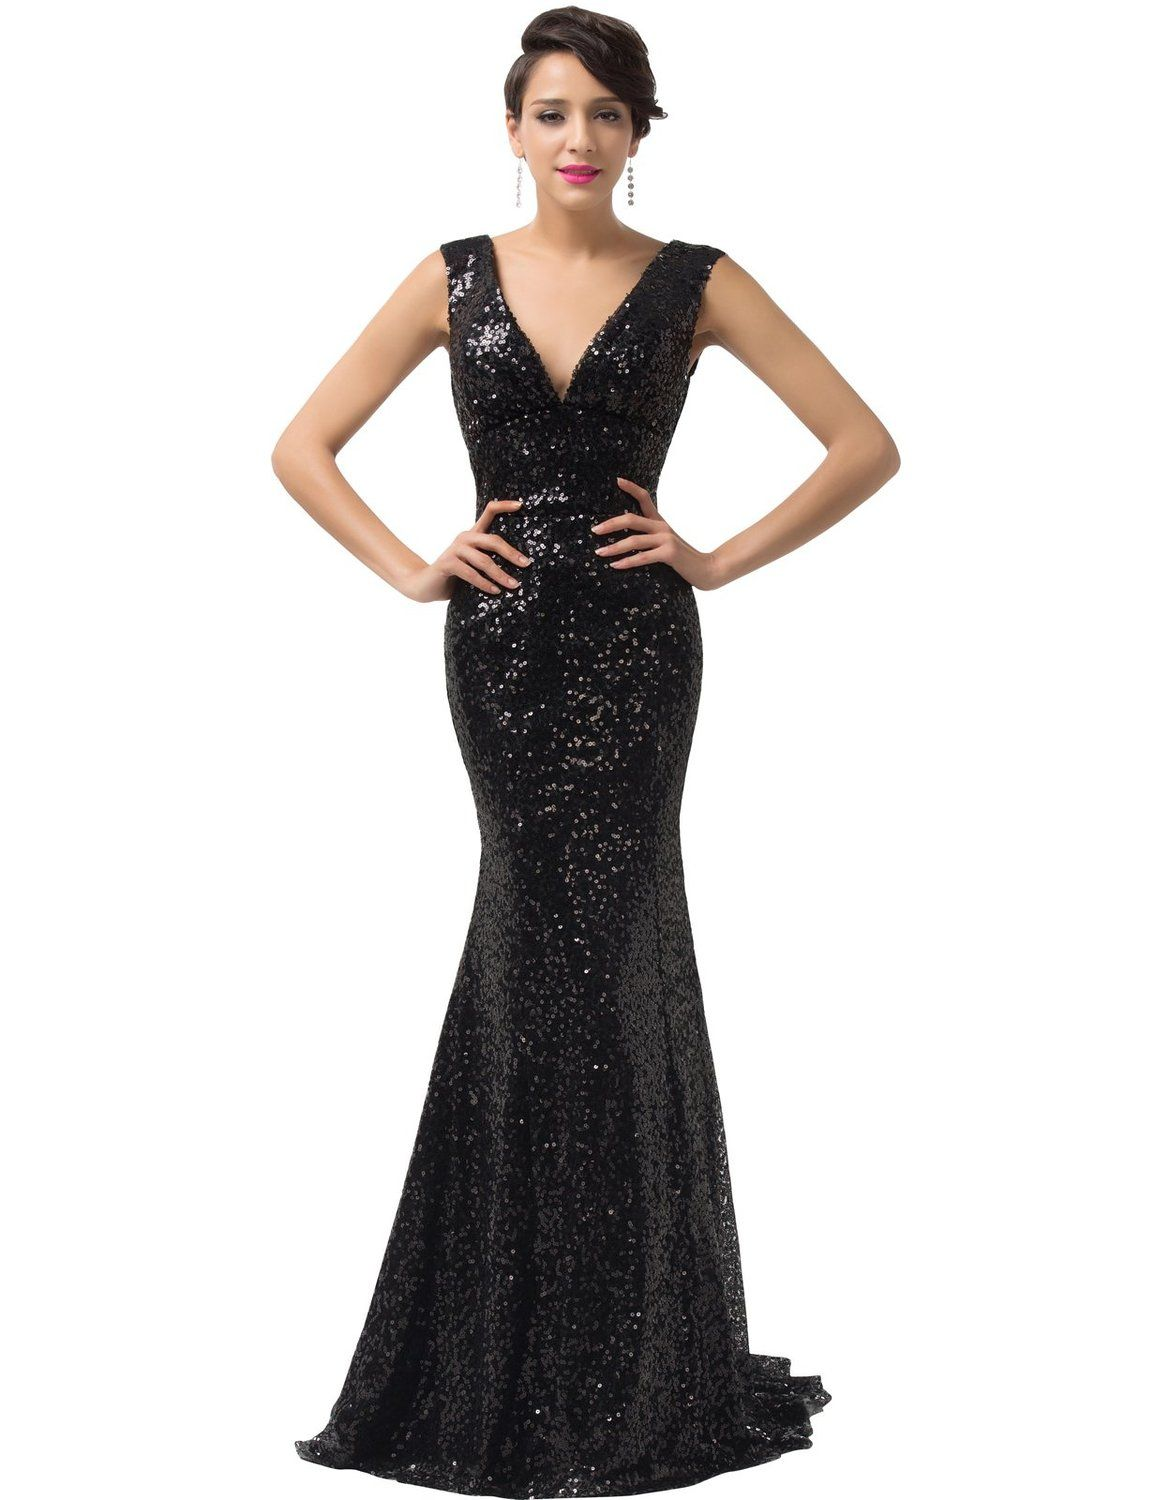 Grace karin sequined sparkle evening prom dress full length cl